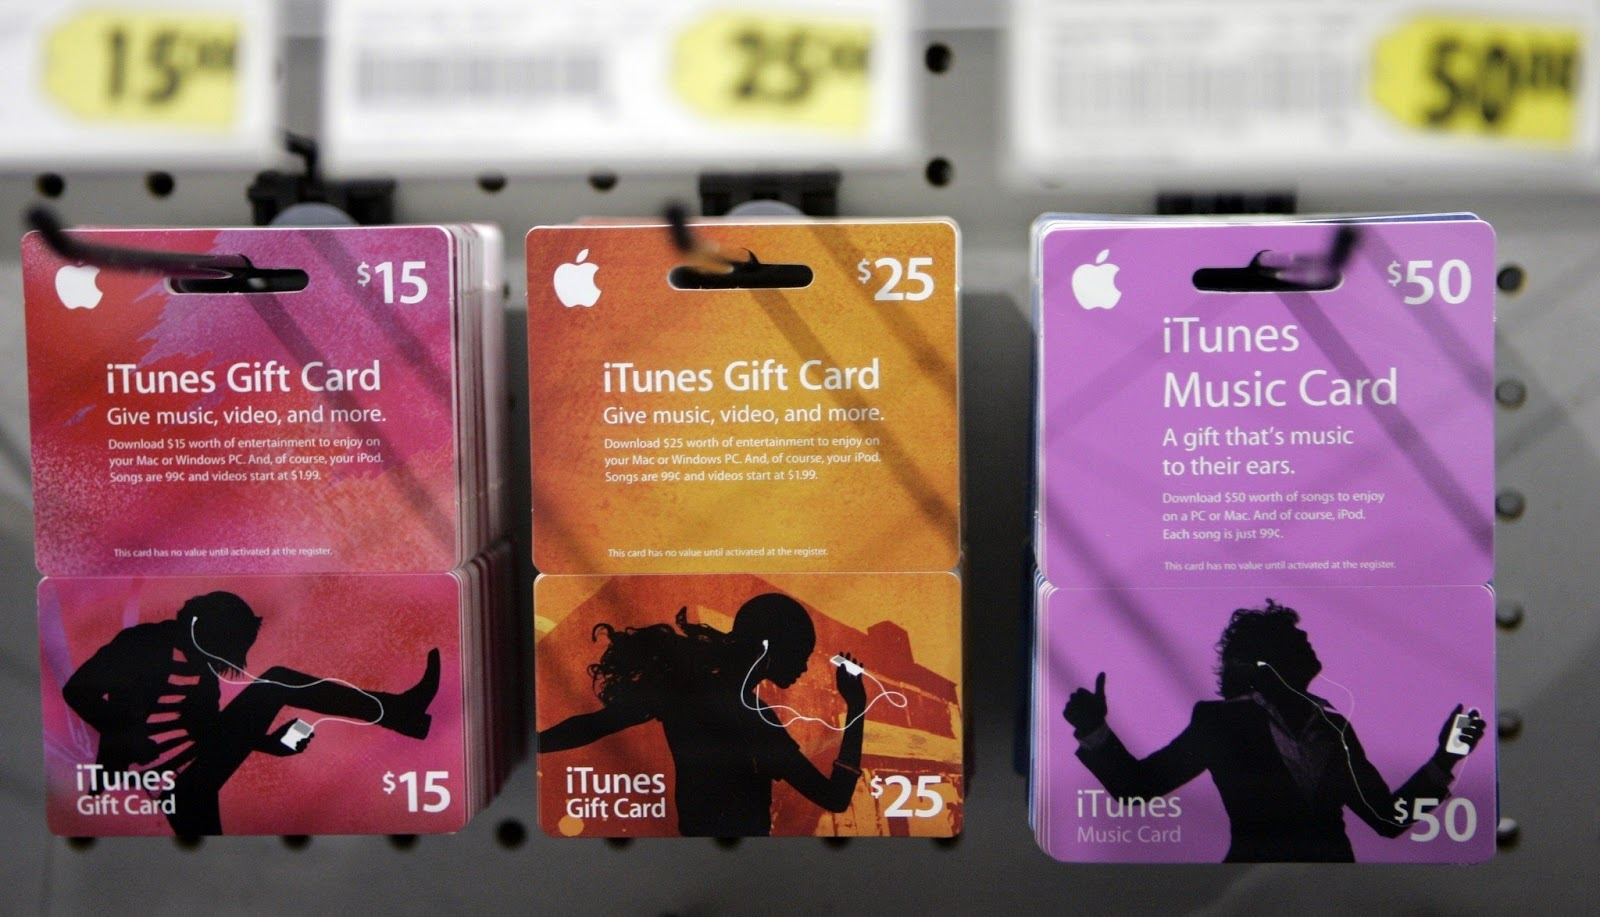 apple-itunes-gift-card-appstore-usa-dang-the-cao-giftcard123.net.jpg